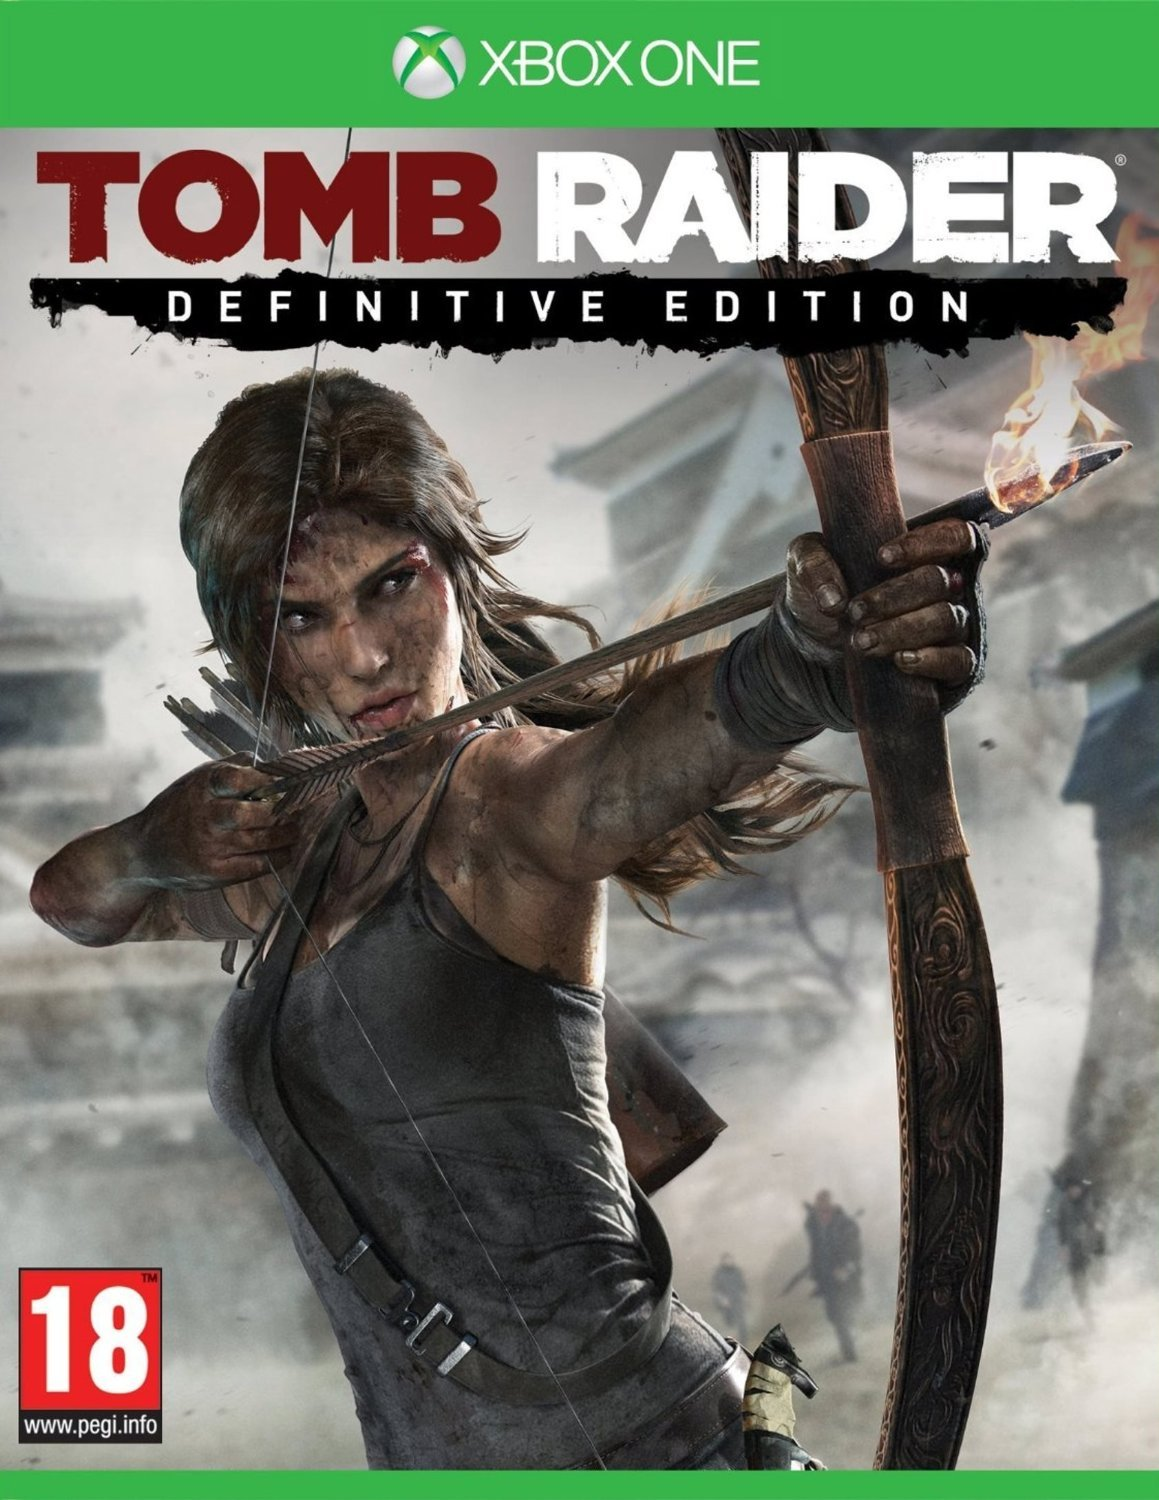 Tomb raider definitive edition xbox one x 60fps